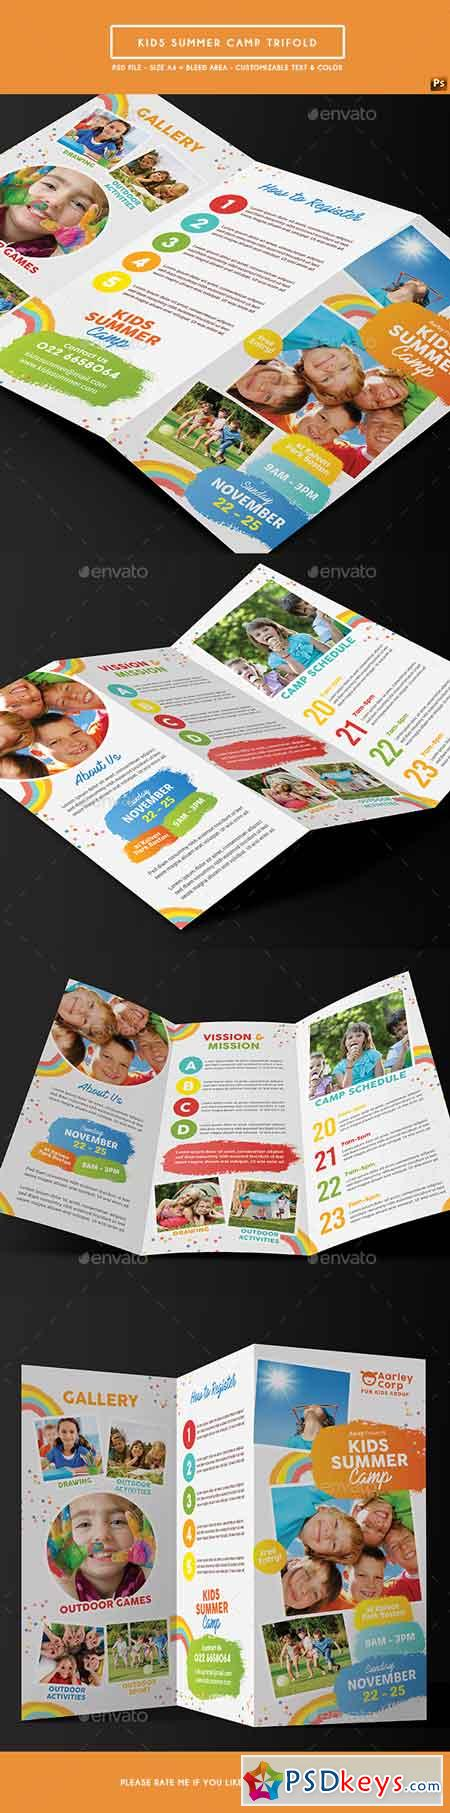 Kids Summer Camp Trifold 19733768